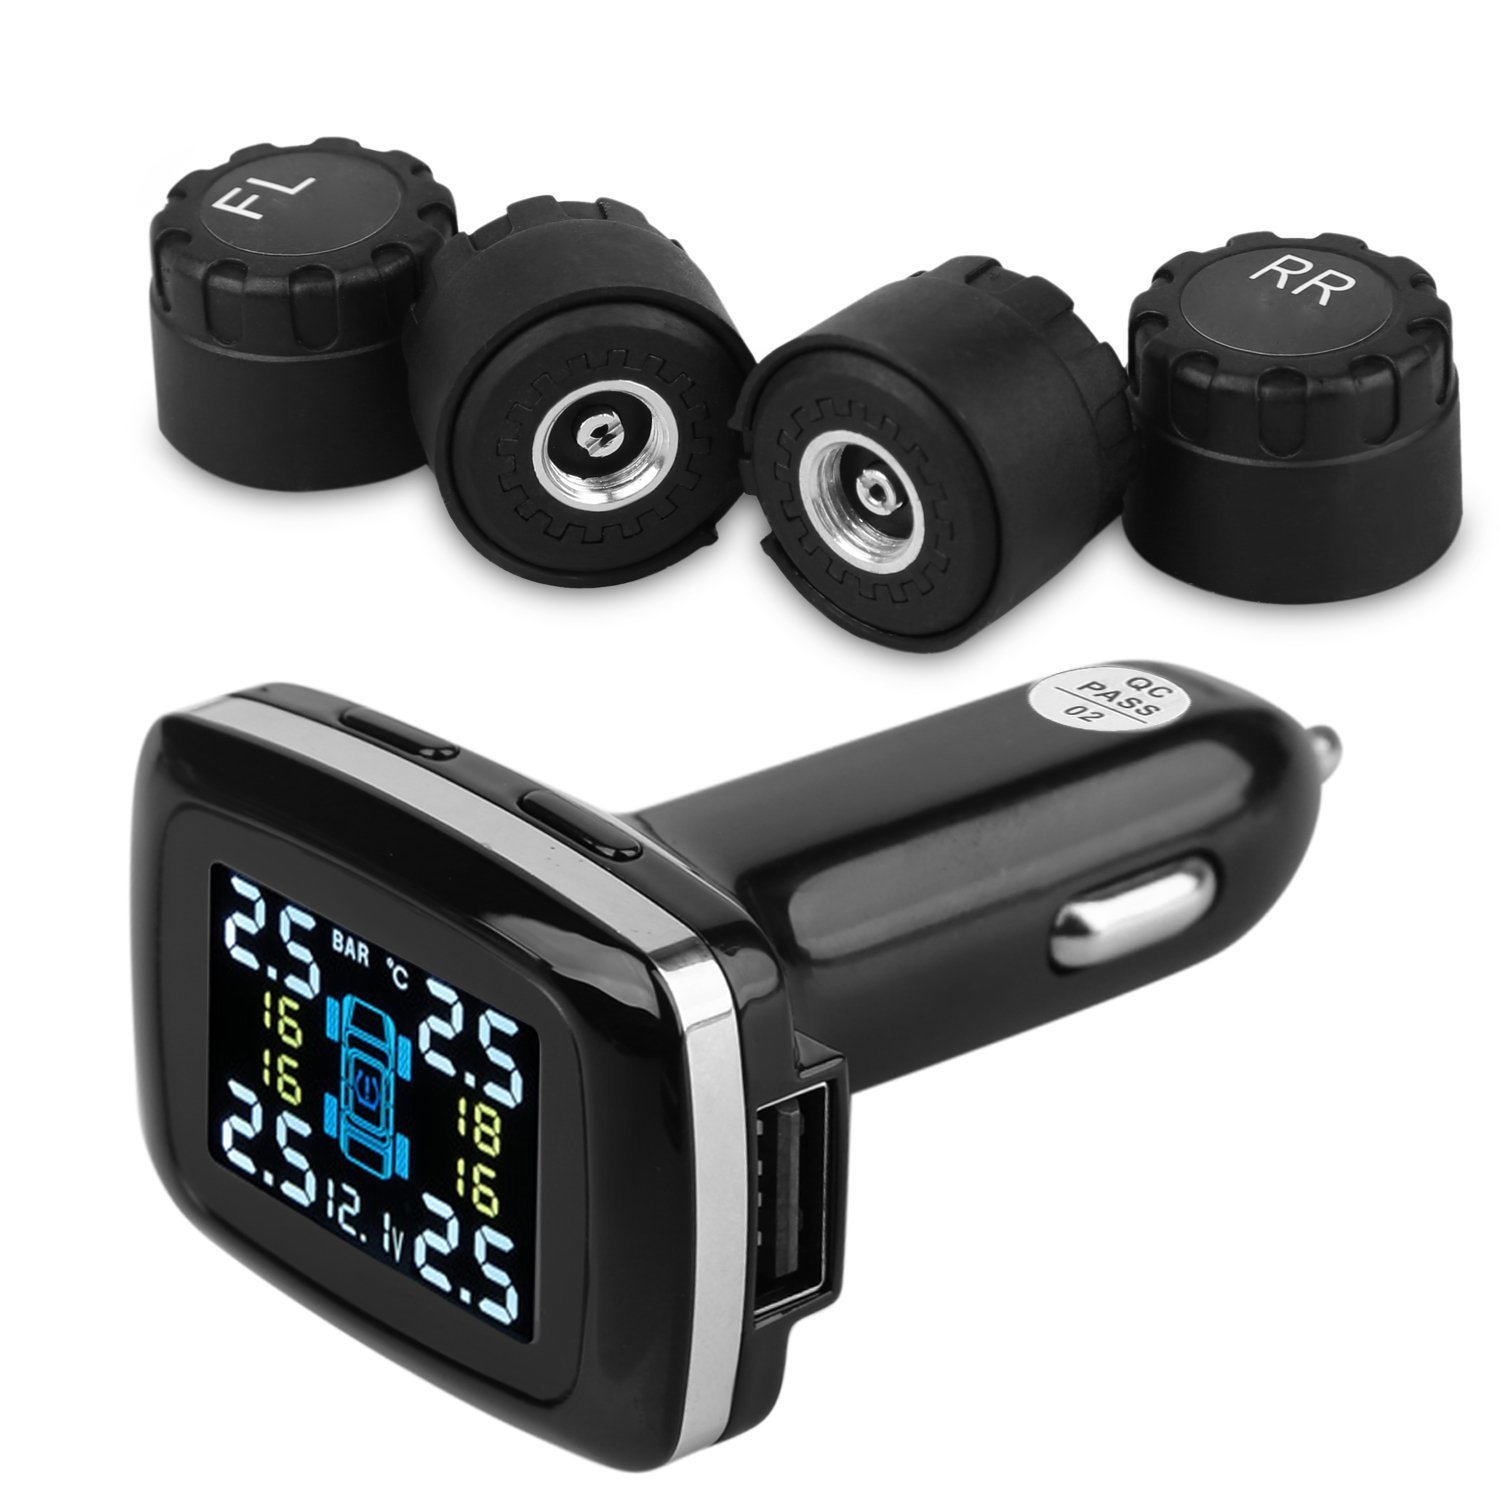 Time Collect TPMS Tire Pressure Monitoring System with 4 External Sensors with USB Charger Port Cigarette Lighter